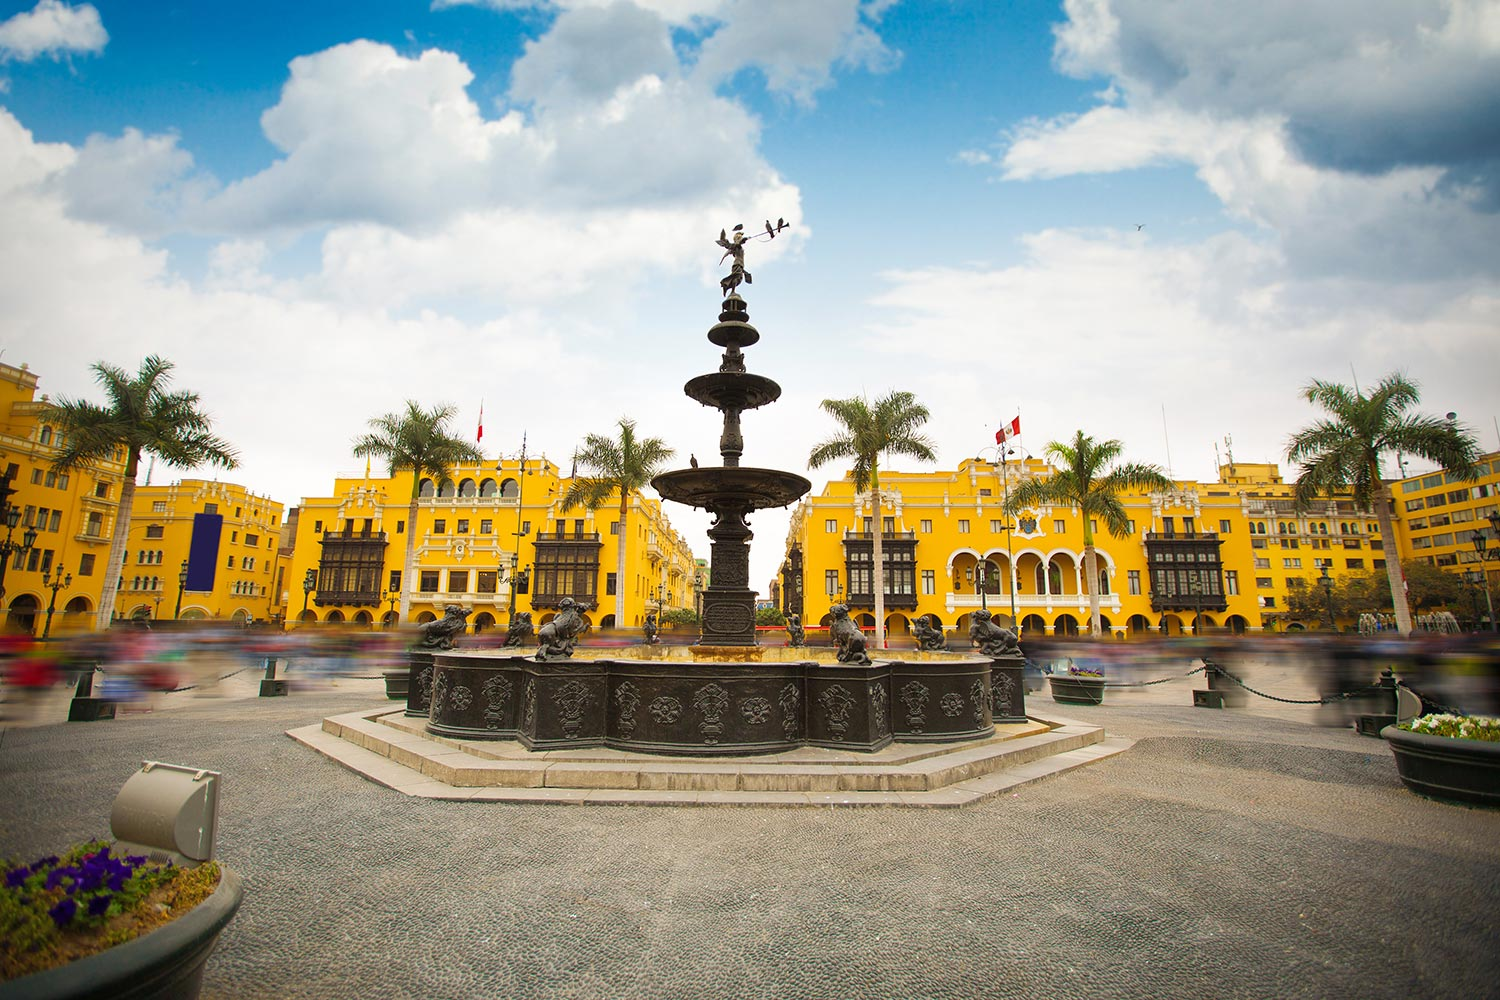 A row of yellow buildings stands in the background of a large fountain in the center of Lima